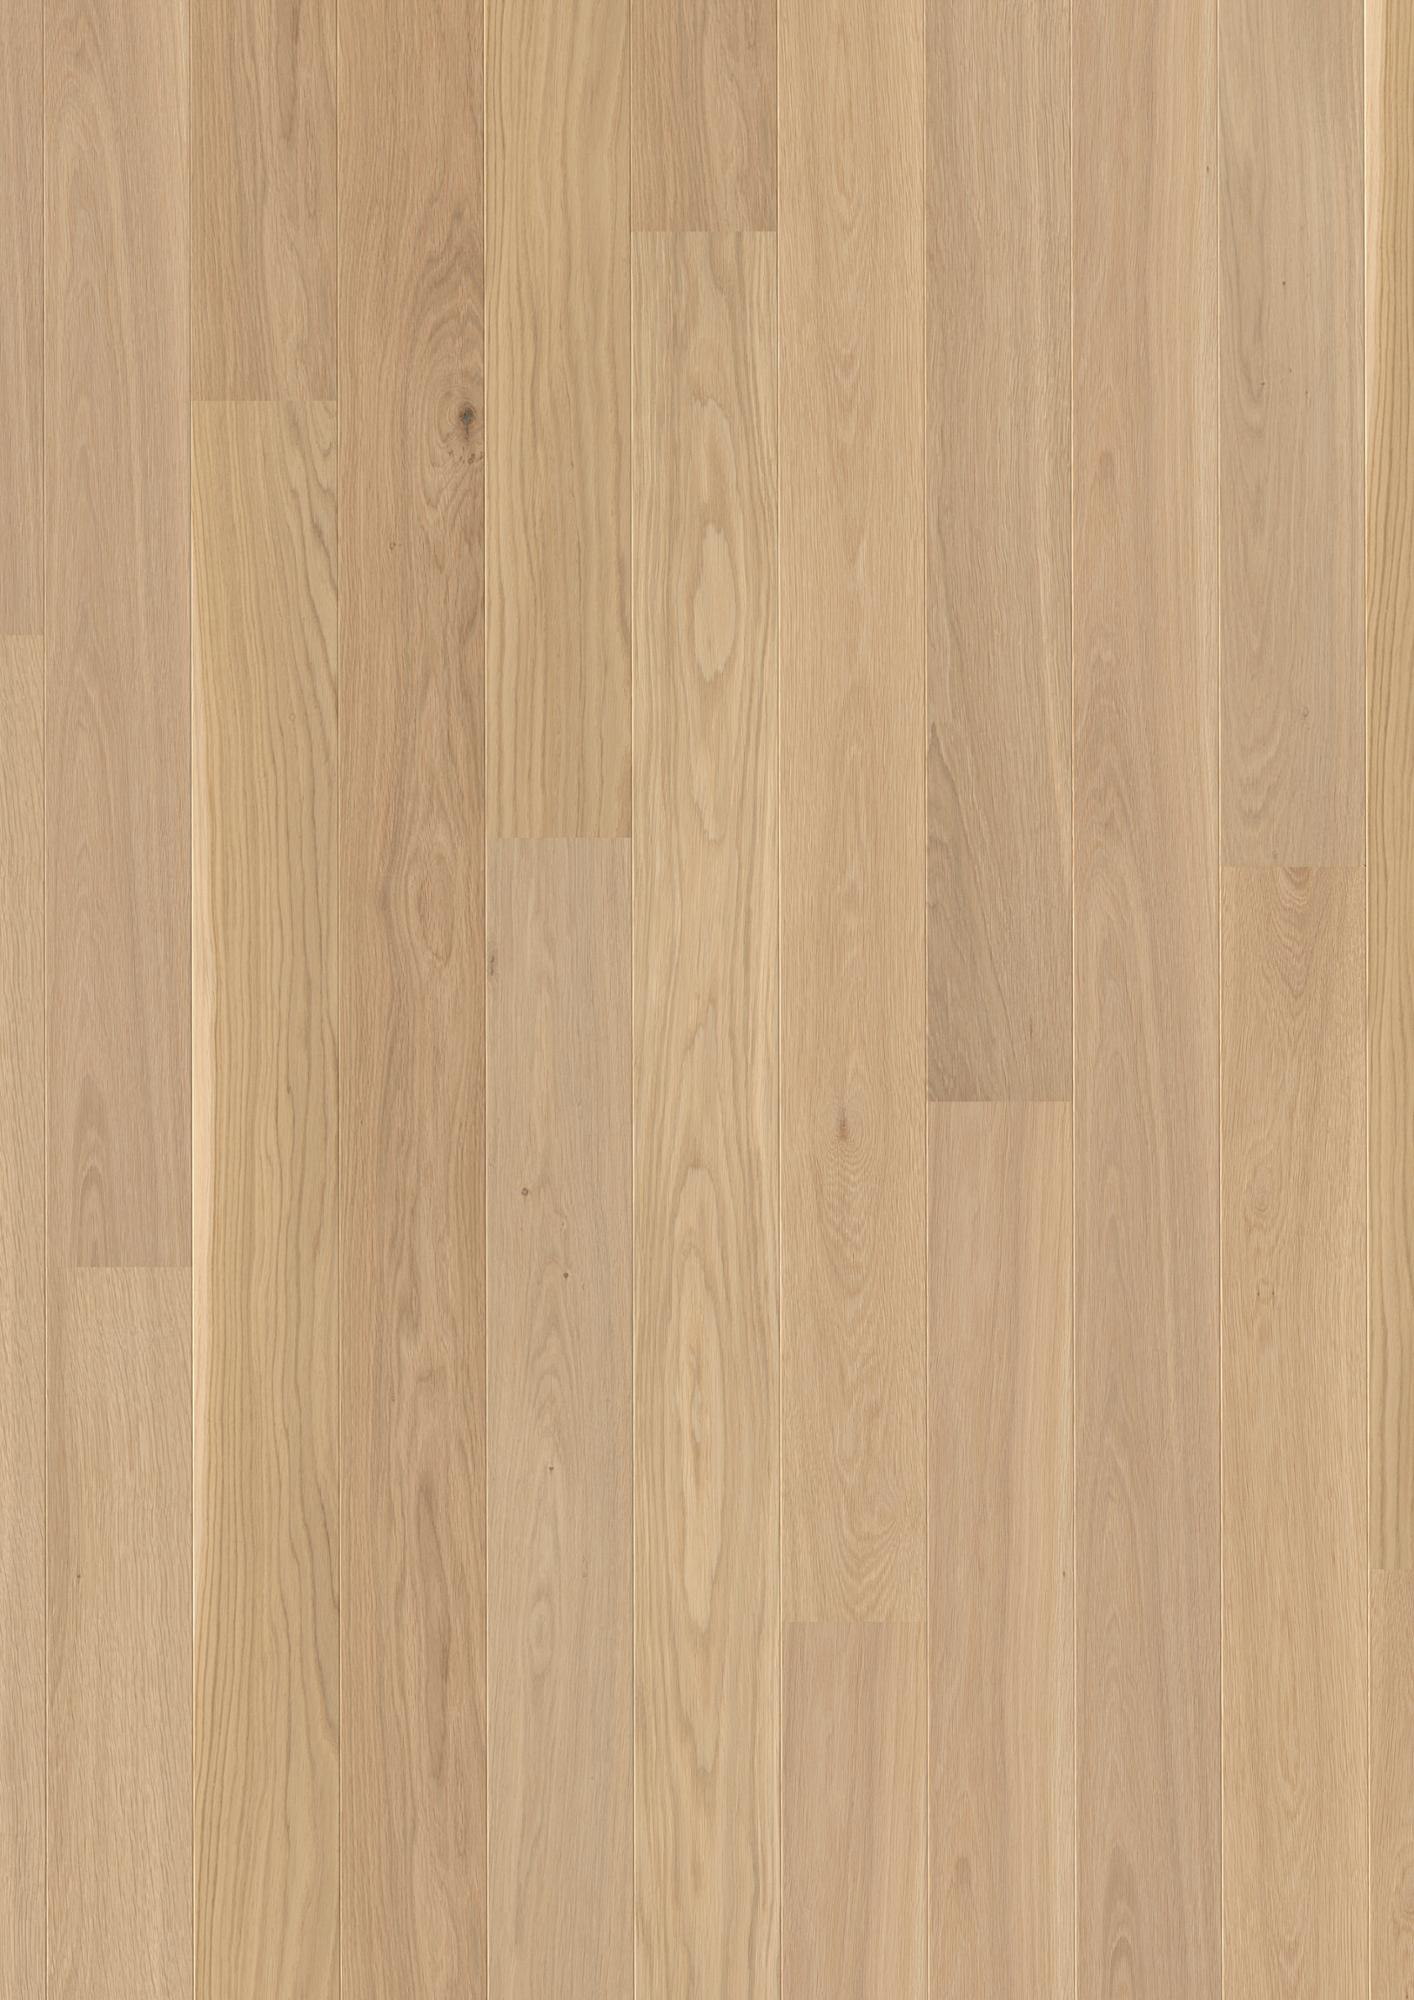 Oak Andante, Live Pure lacquer, Brushed, Beveled 2V, Plank 138, 14x138x2200mm